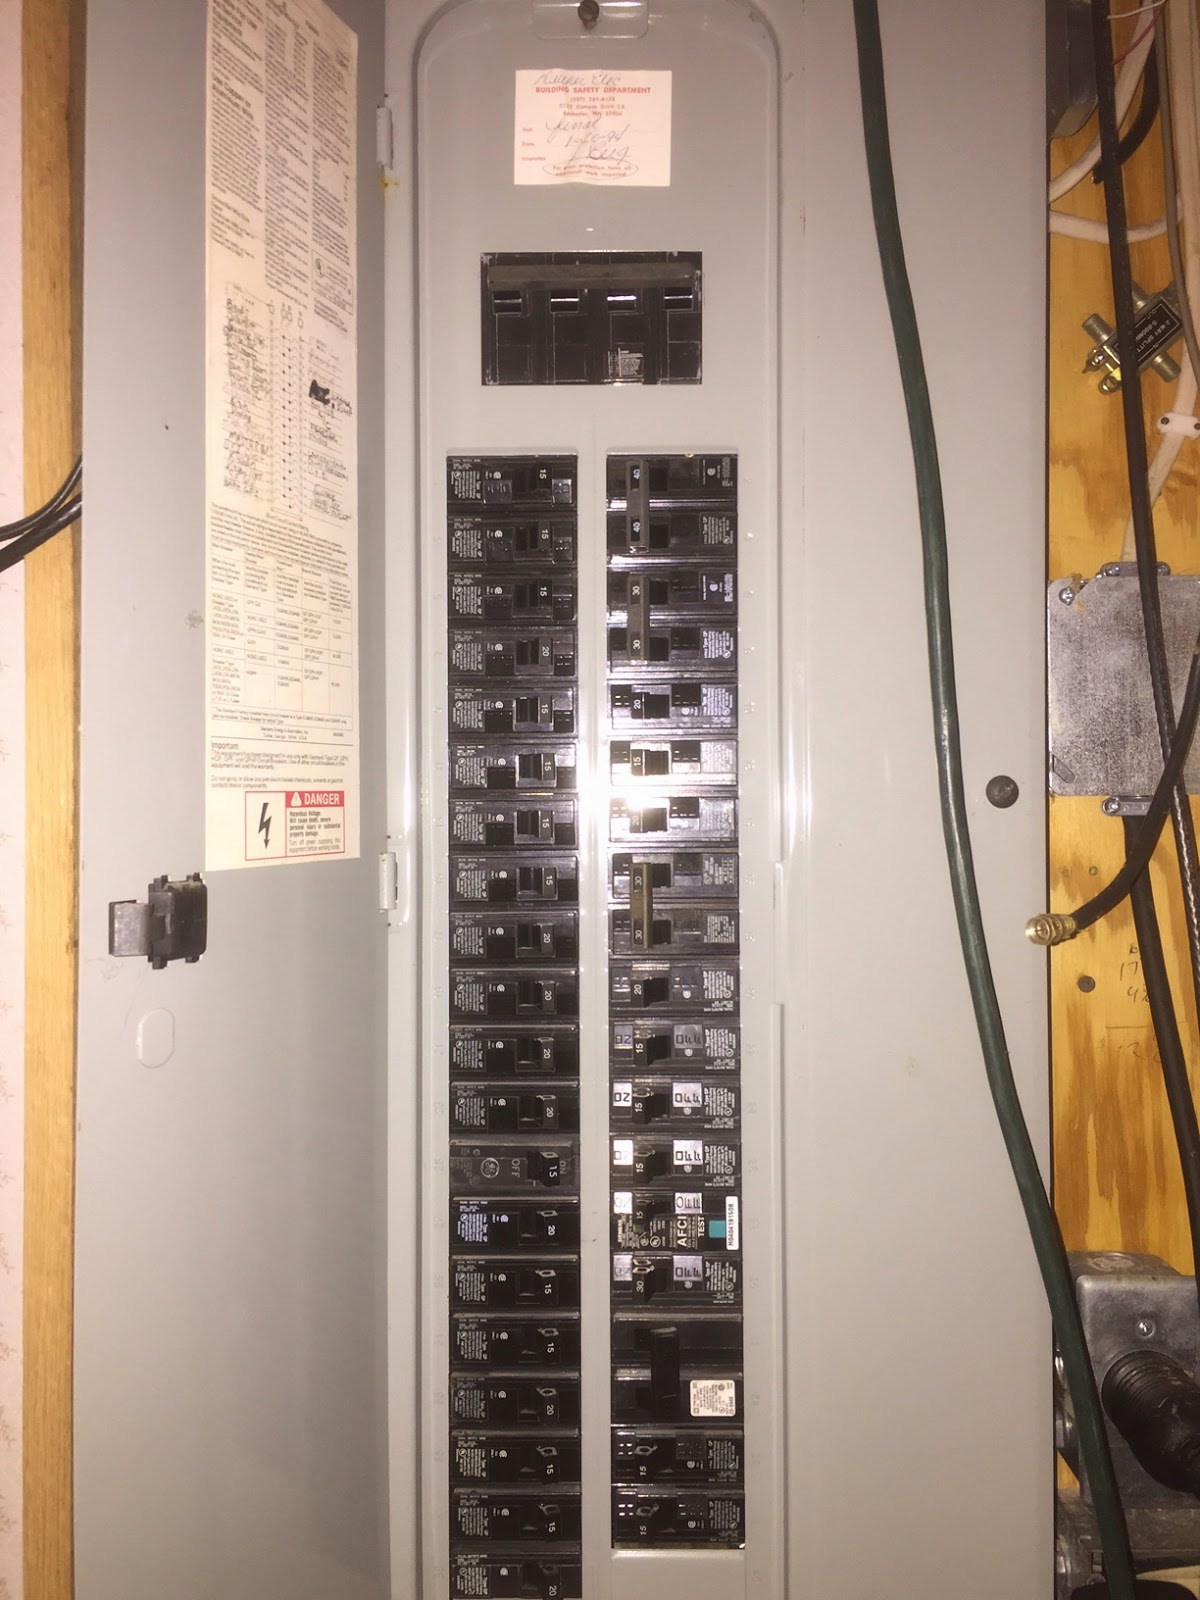 We walked down to the furnace room, and I introduced her to the fuse box: